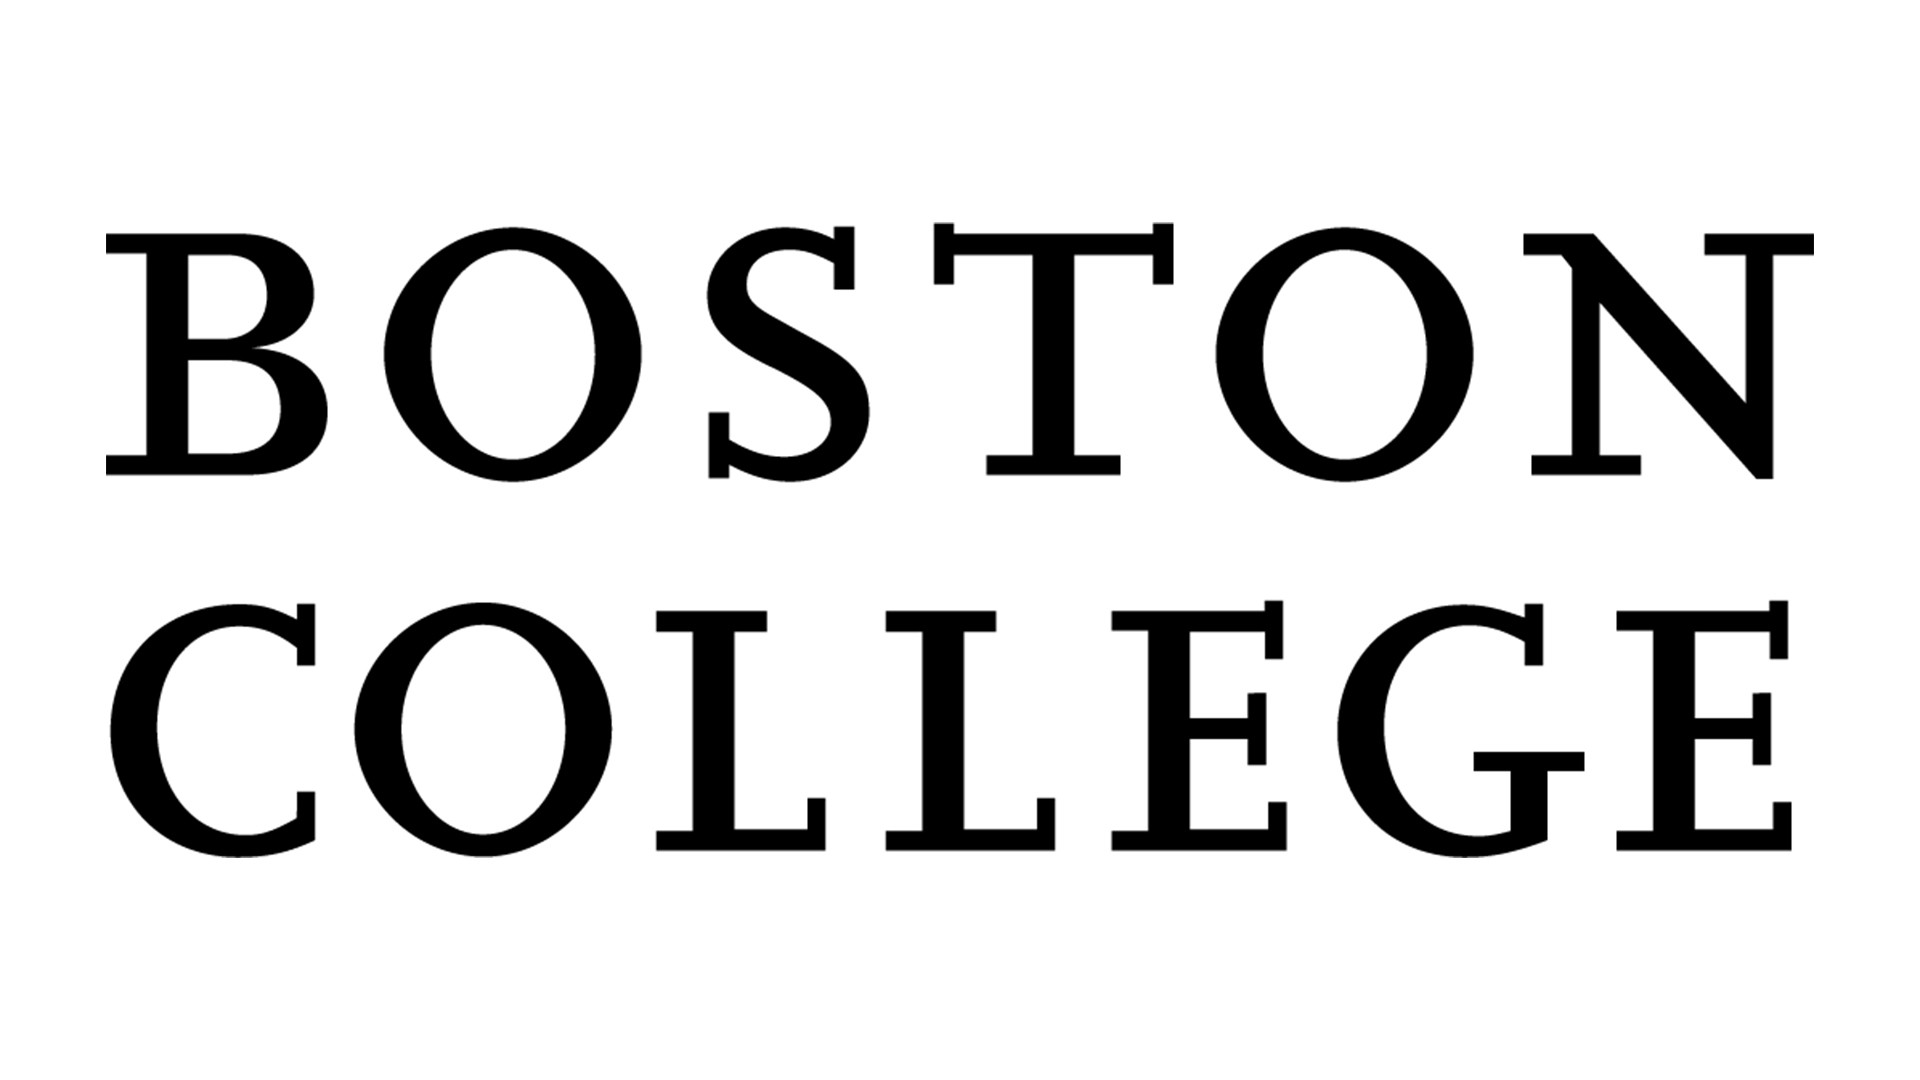 BOSTON COLLEGE.jpg